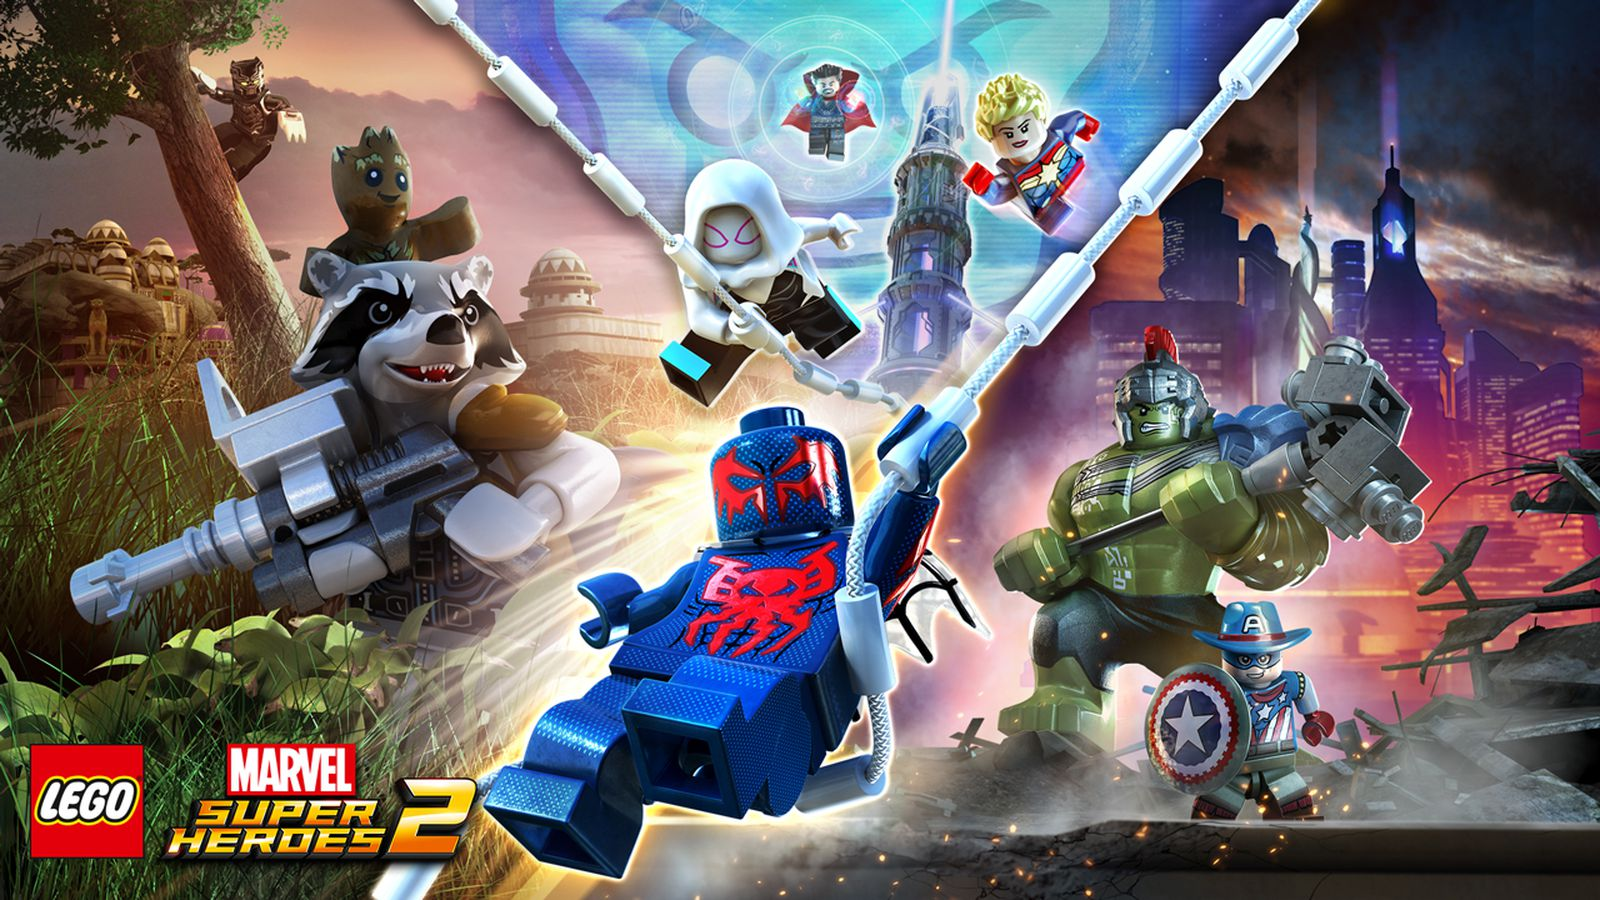 Lego marvel super heroes 2 coming to pc ps4 switch xbox one lego marvel super heroes 2 coming to pc ps4 switch xbox one polygon voltagebd Image collections